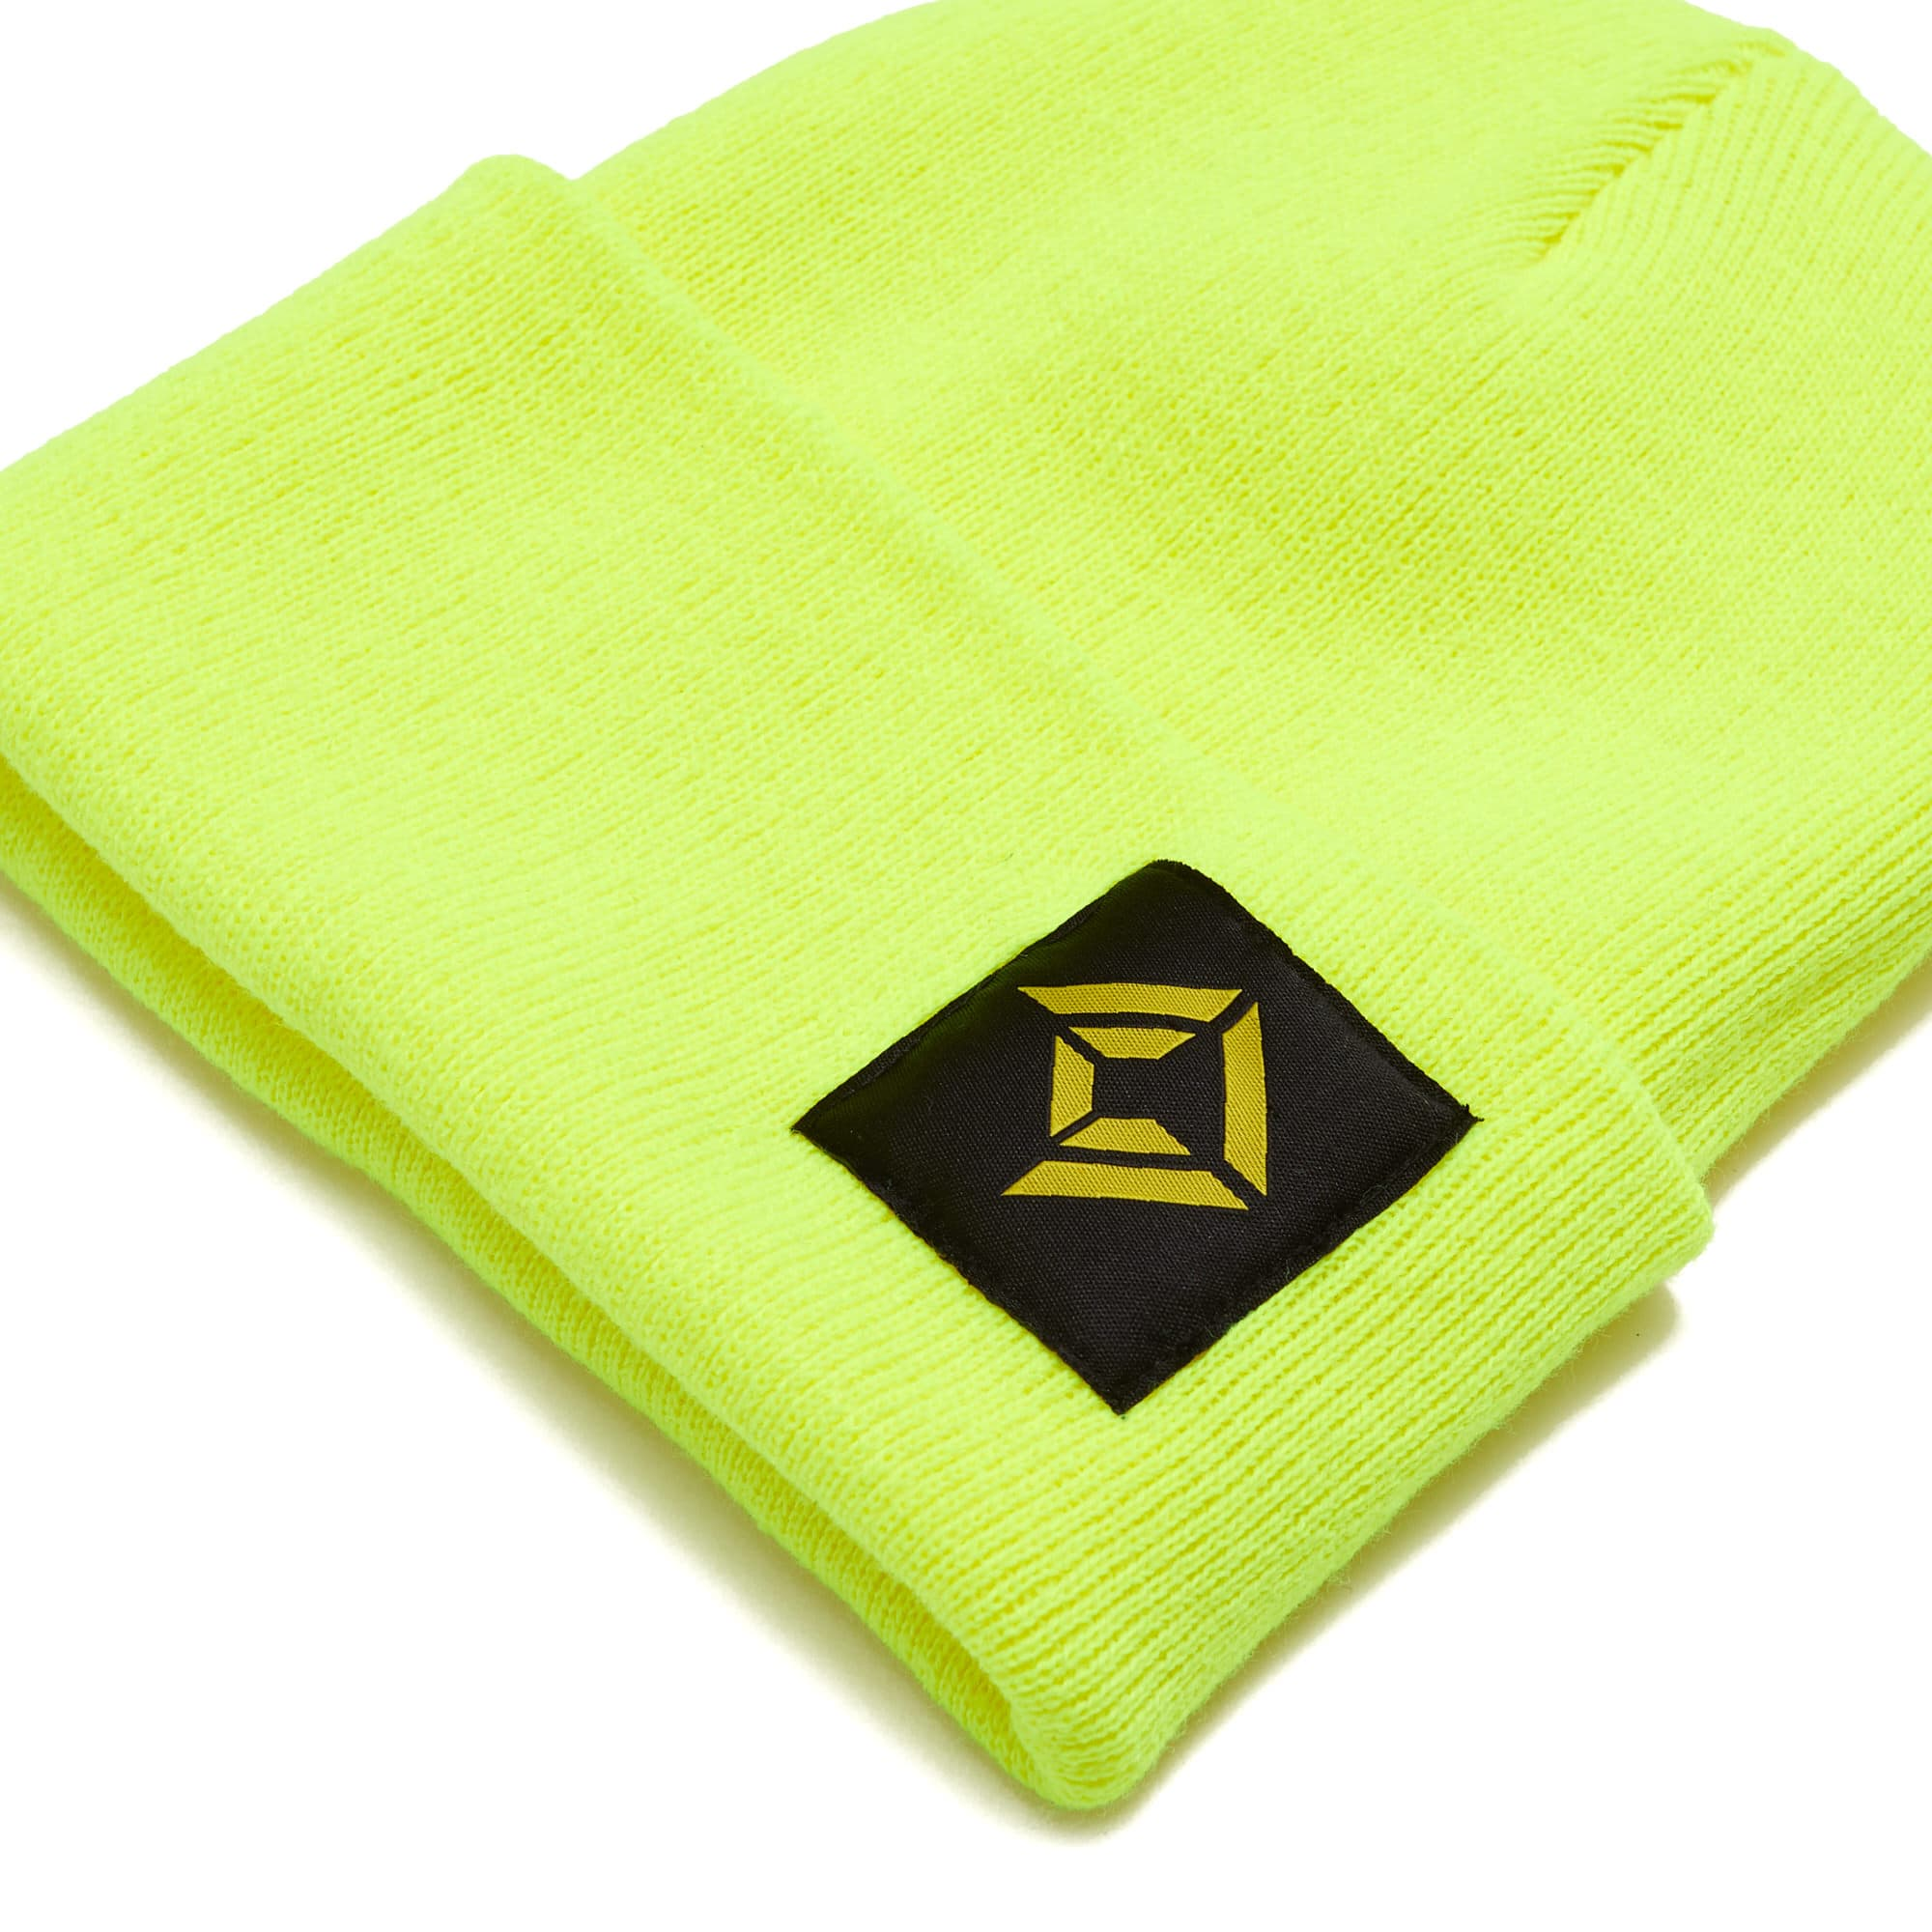 Corridor Digital Cuff Beanie - Neon Yellow